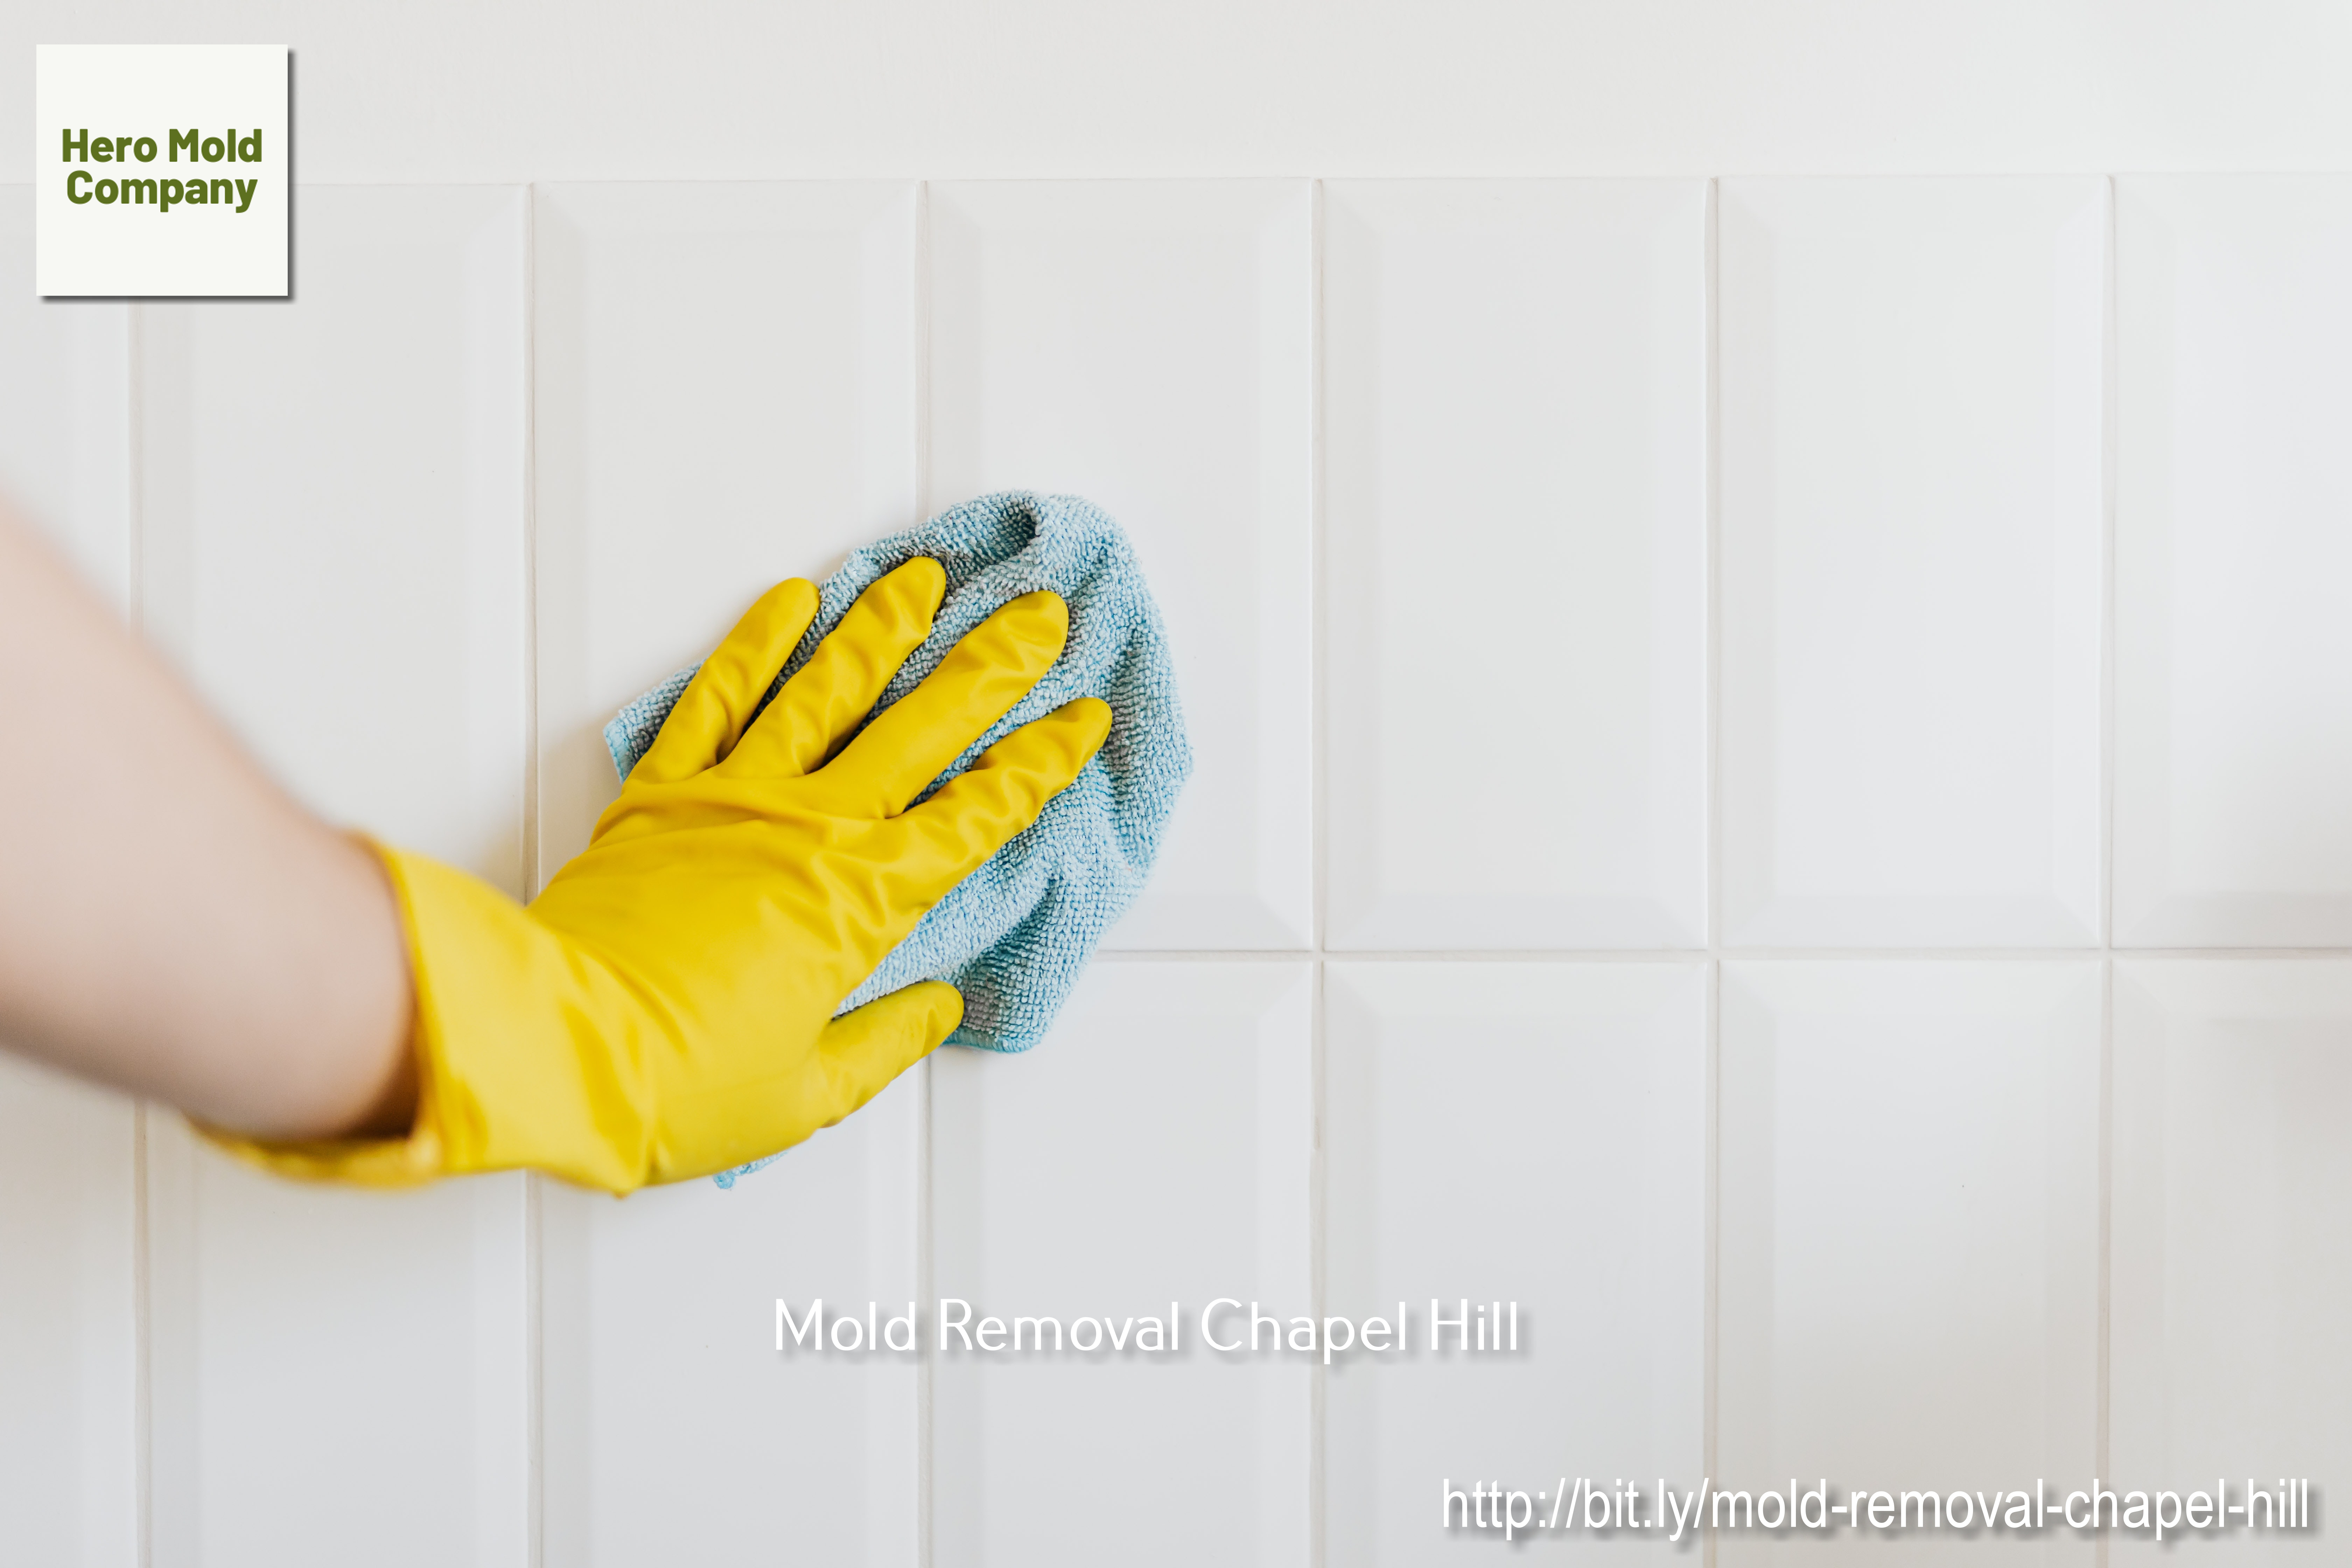 Hero Mold Company States Why Hiring a Reliable Mold Removal Company Is in One's Best Interests